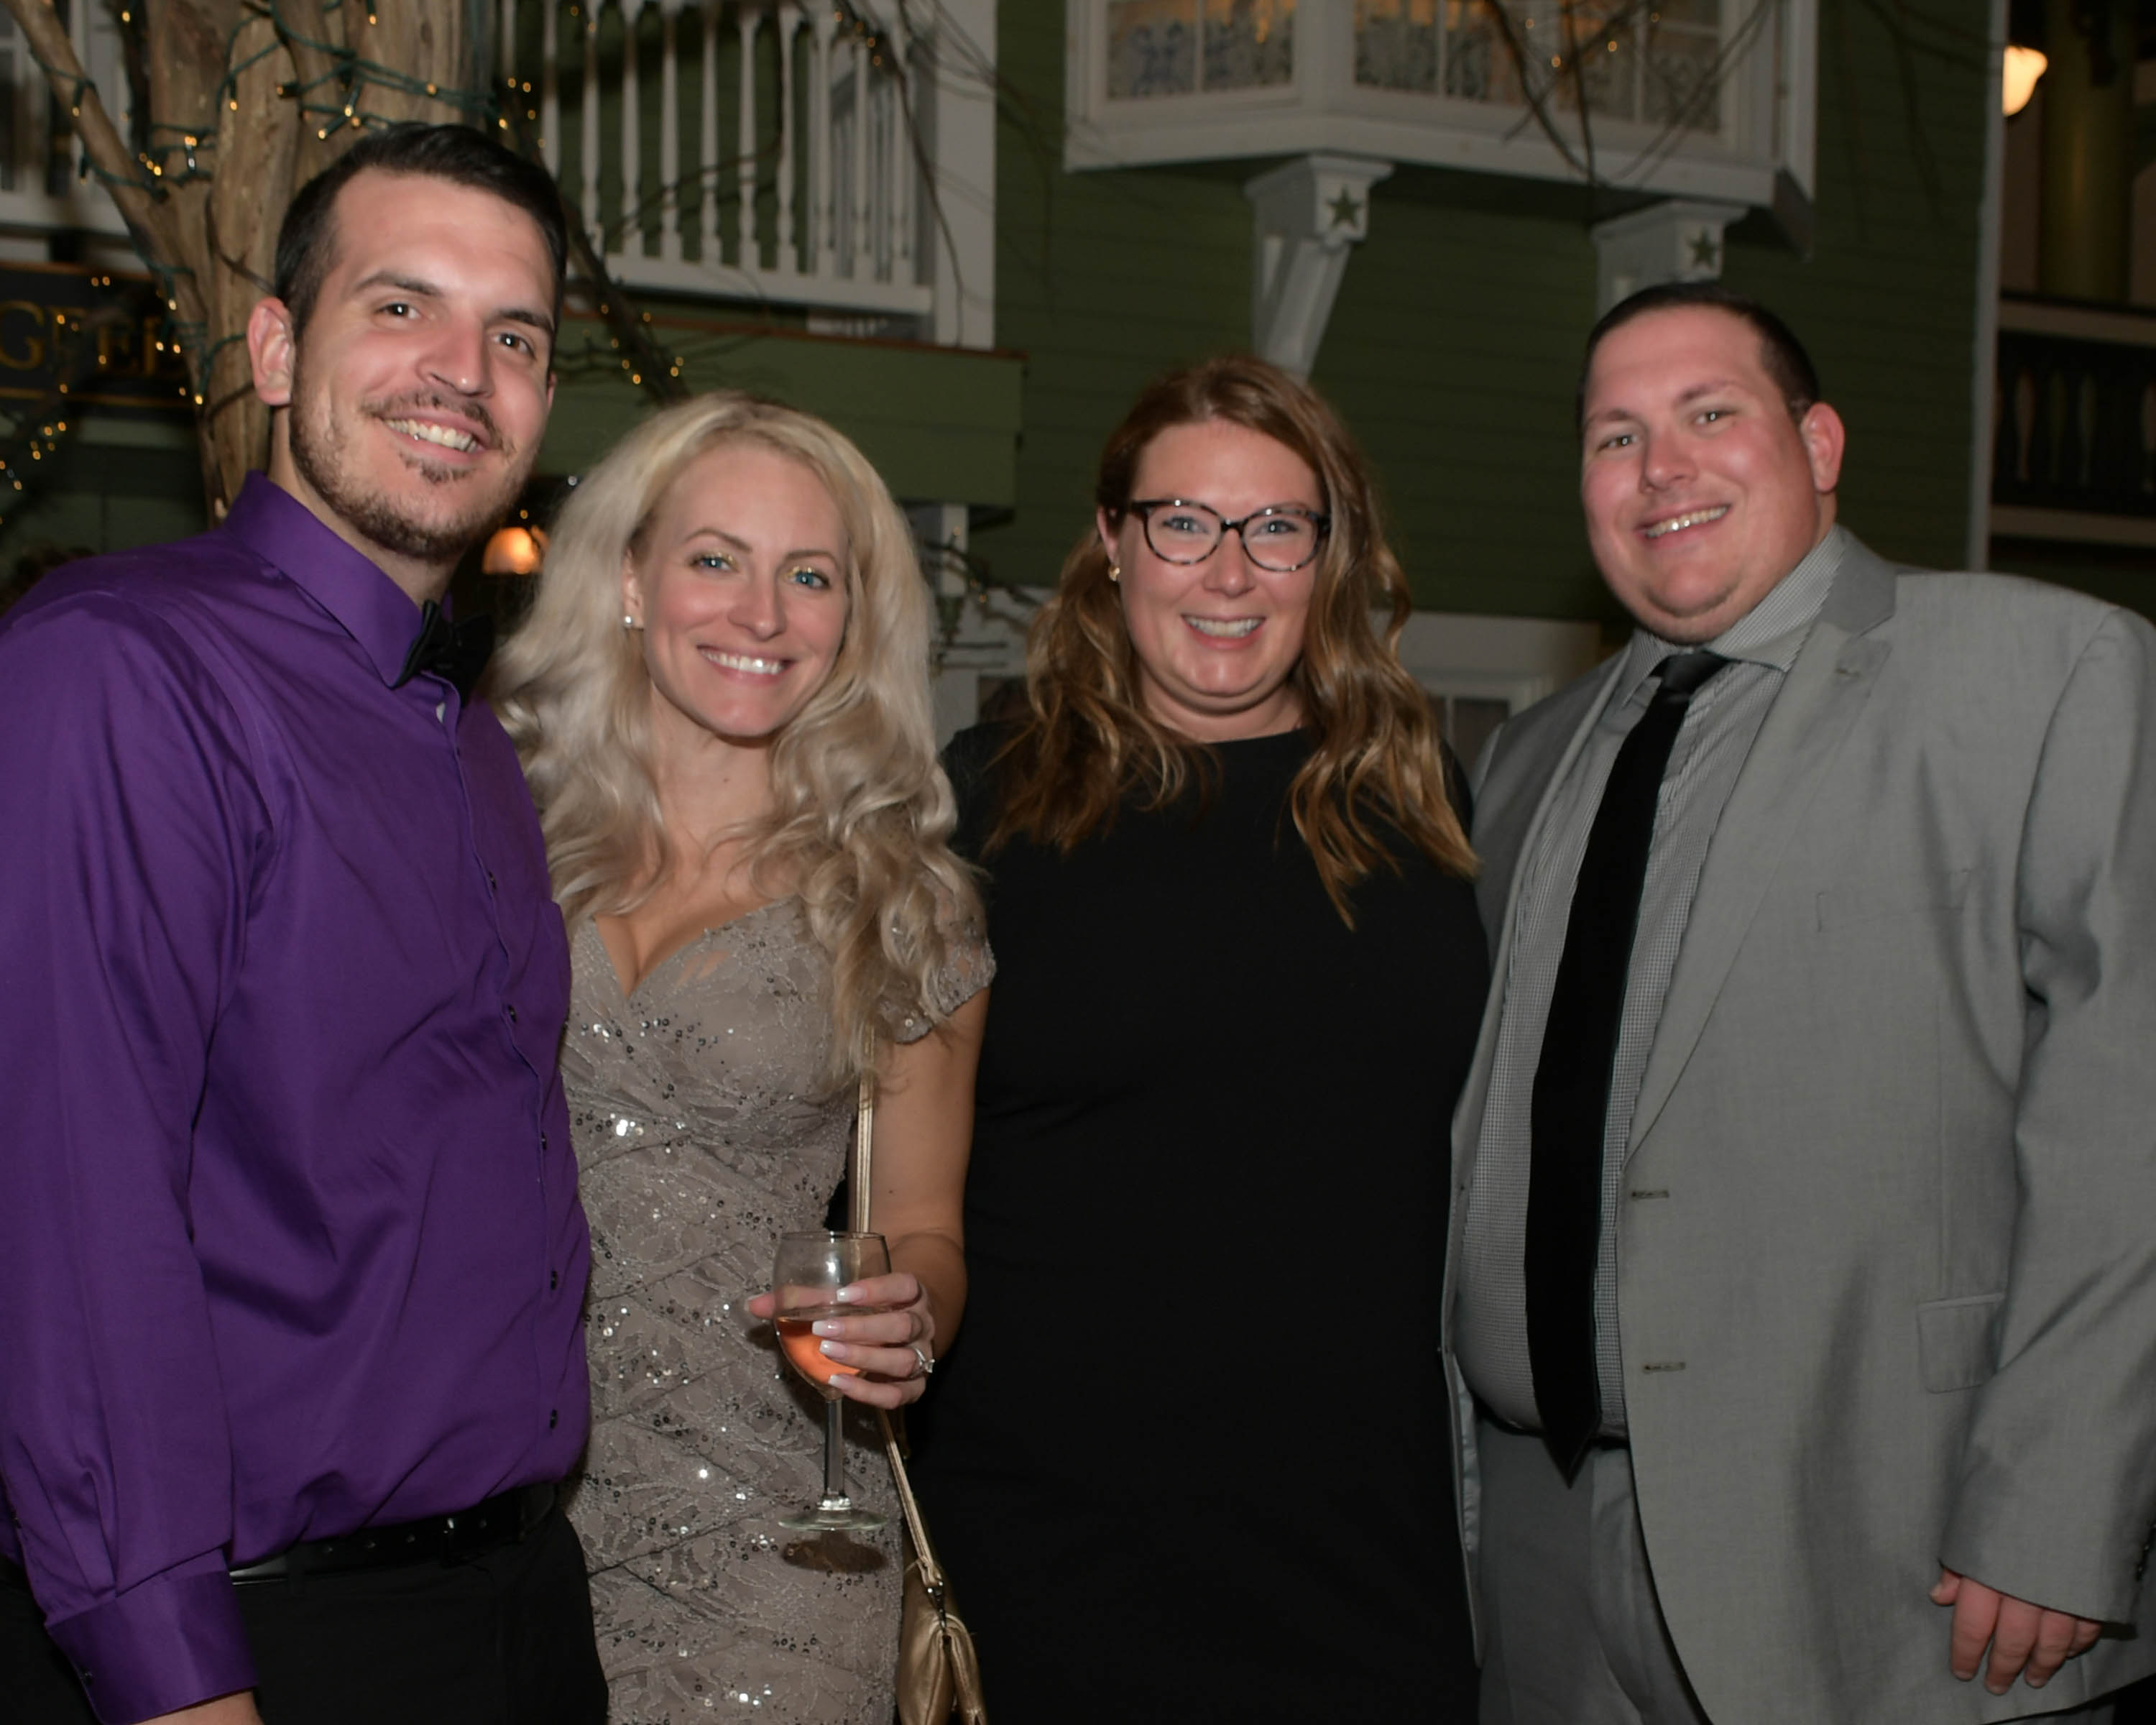 Vin Le Soir to benefit AIM Services, Inc. group of four people